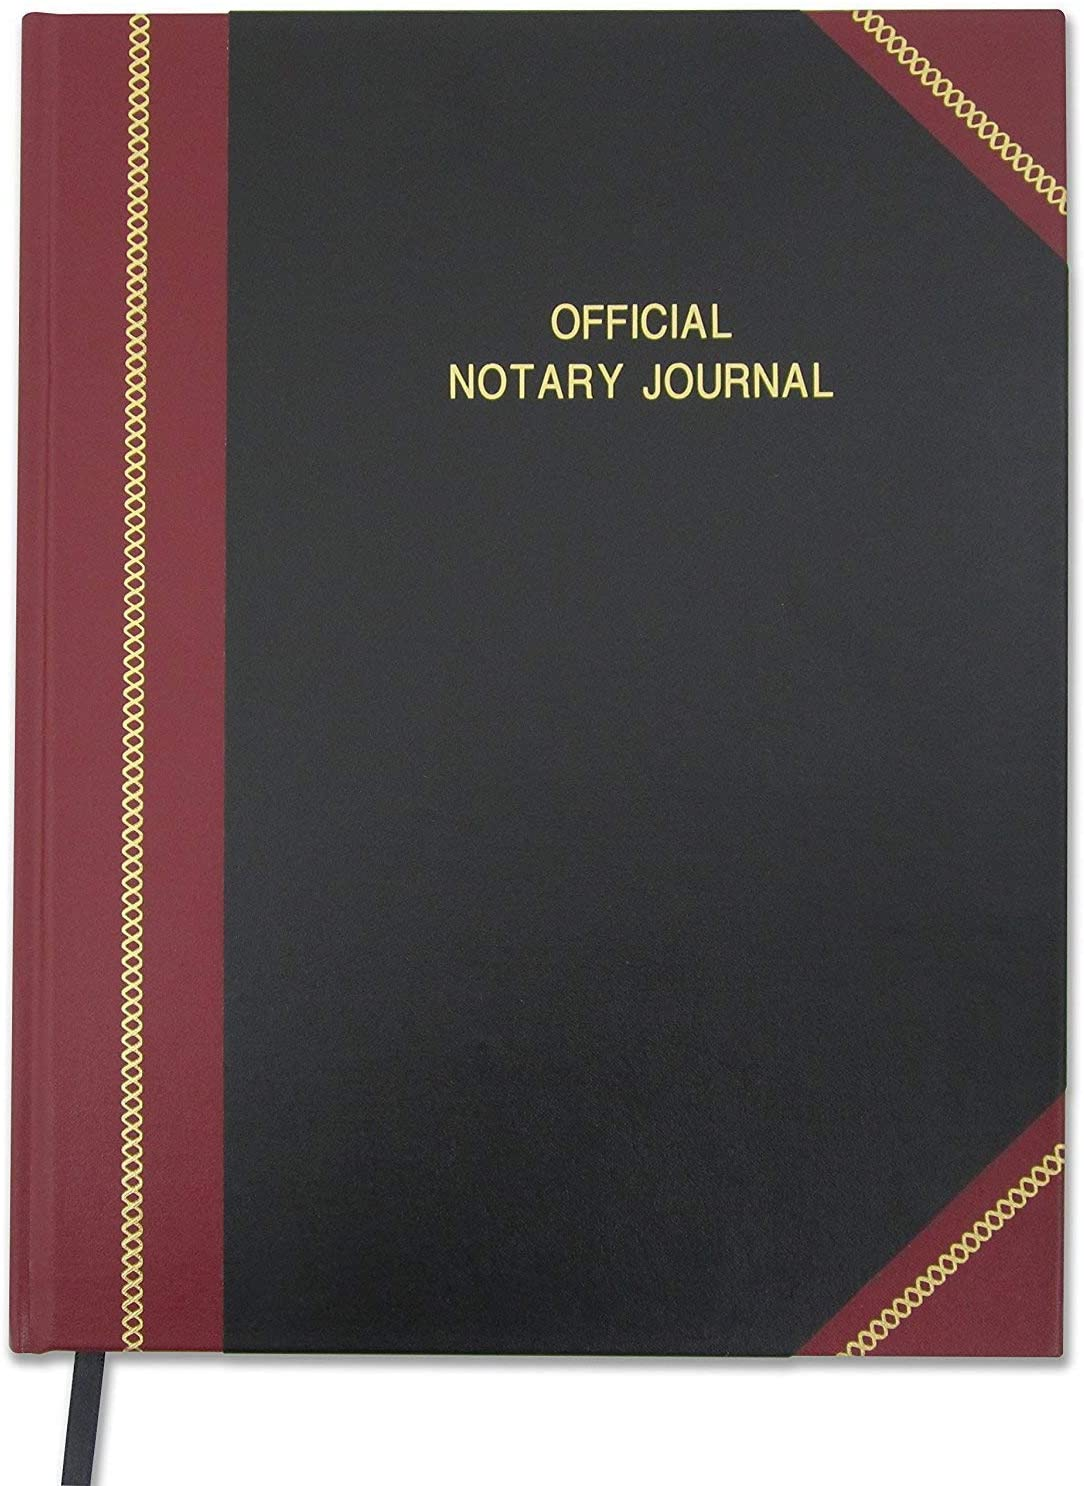 BookFactory Official Notary Journal/Log Book 96 Pages 8.5 X 11 380 Entries 50 State Journal of Notarial Acts, Black and Burgundy Cover, Black Ribbon Hardbound (LOG-096-7CS-LKMST71(Notary))